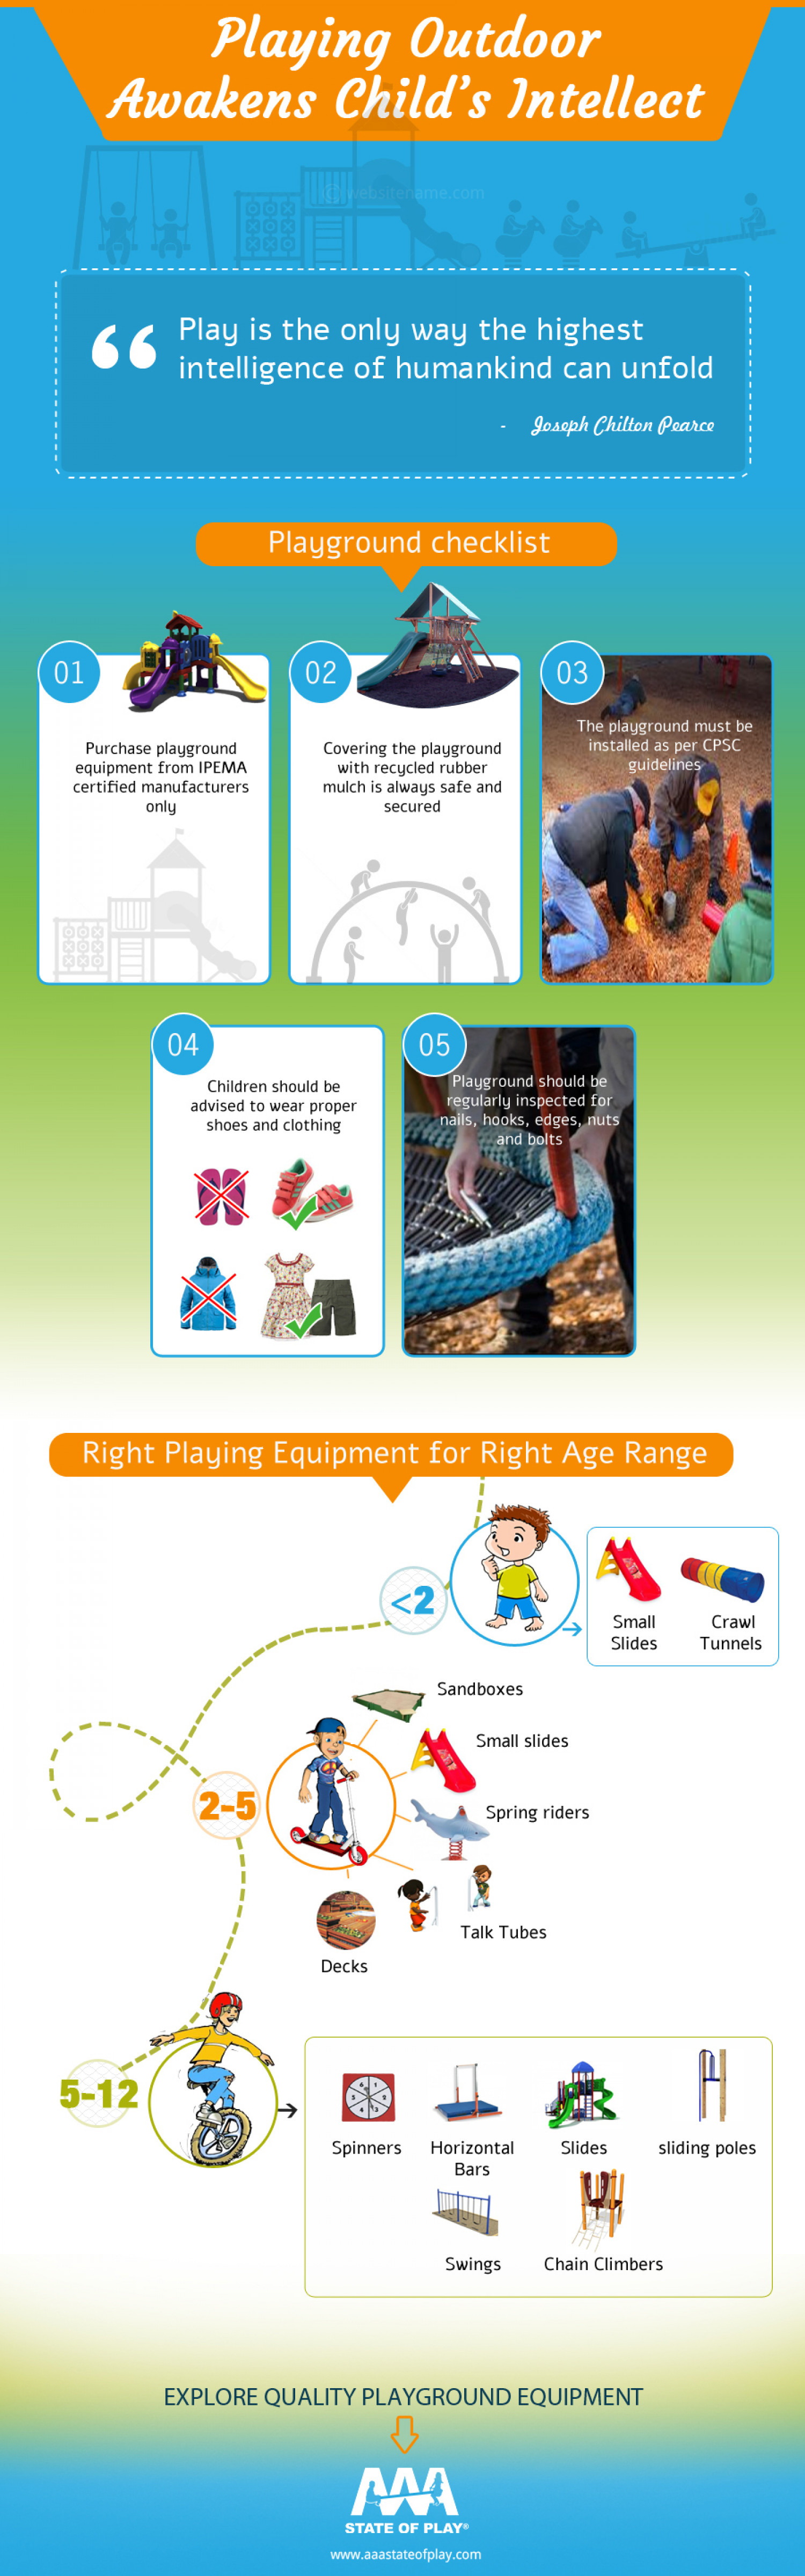 Playground Equipment Infographic